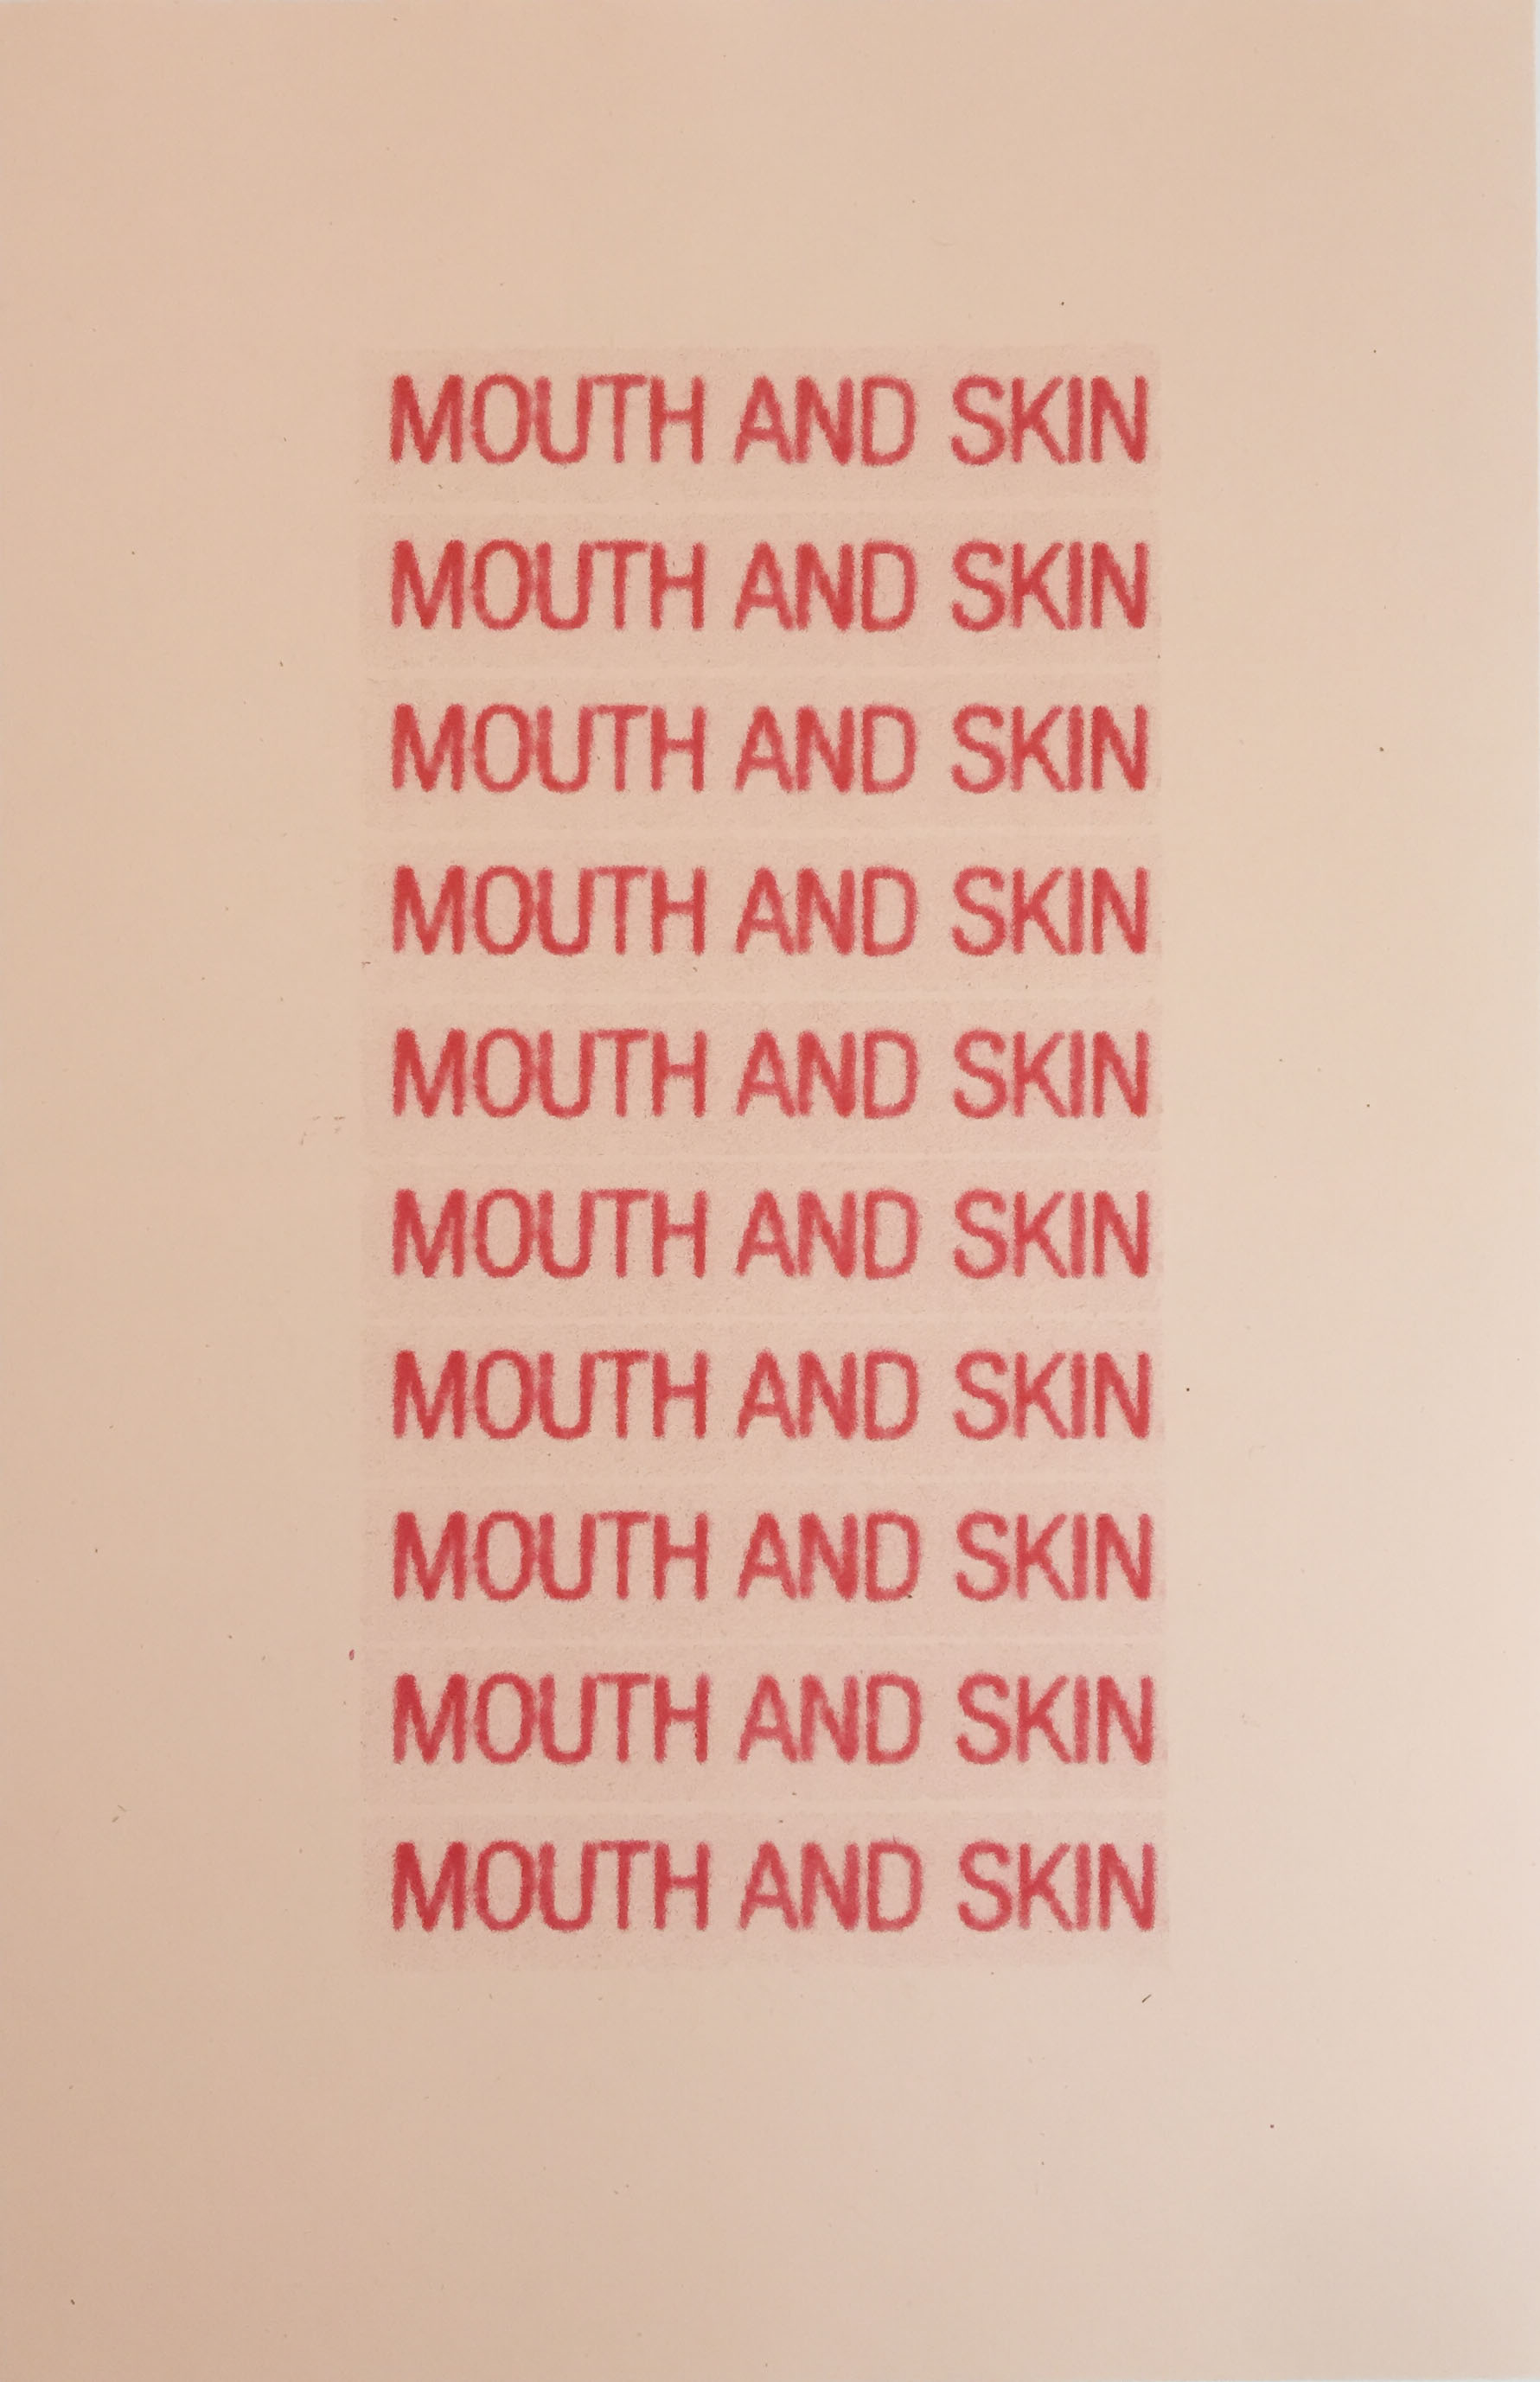 Barr_Mouth and Skin - Liz Barr.JPG